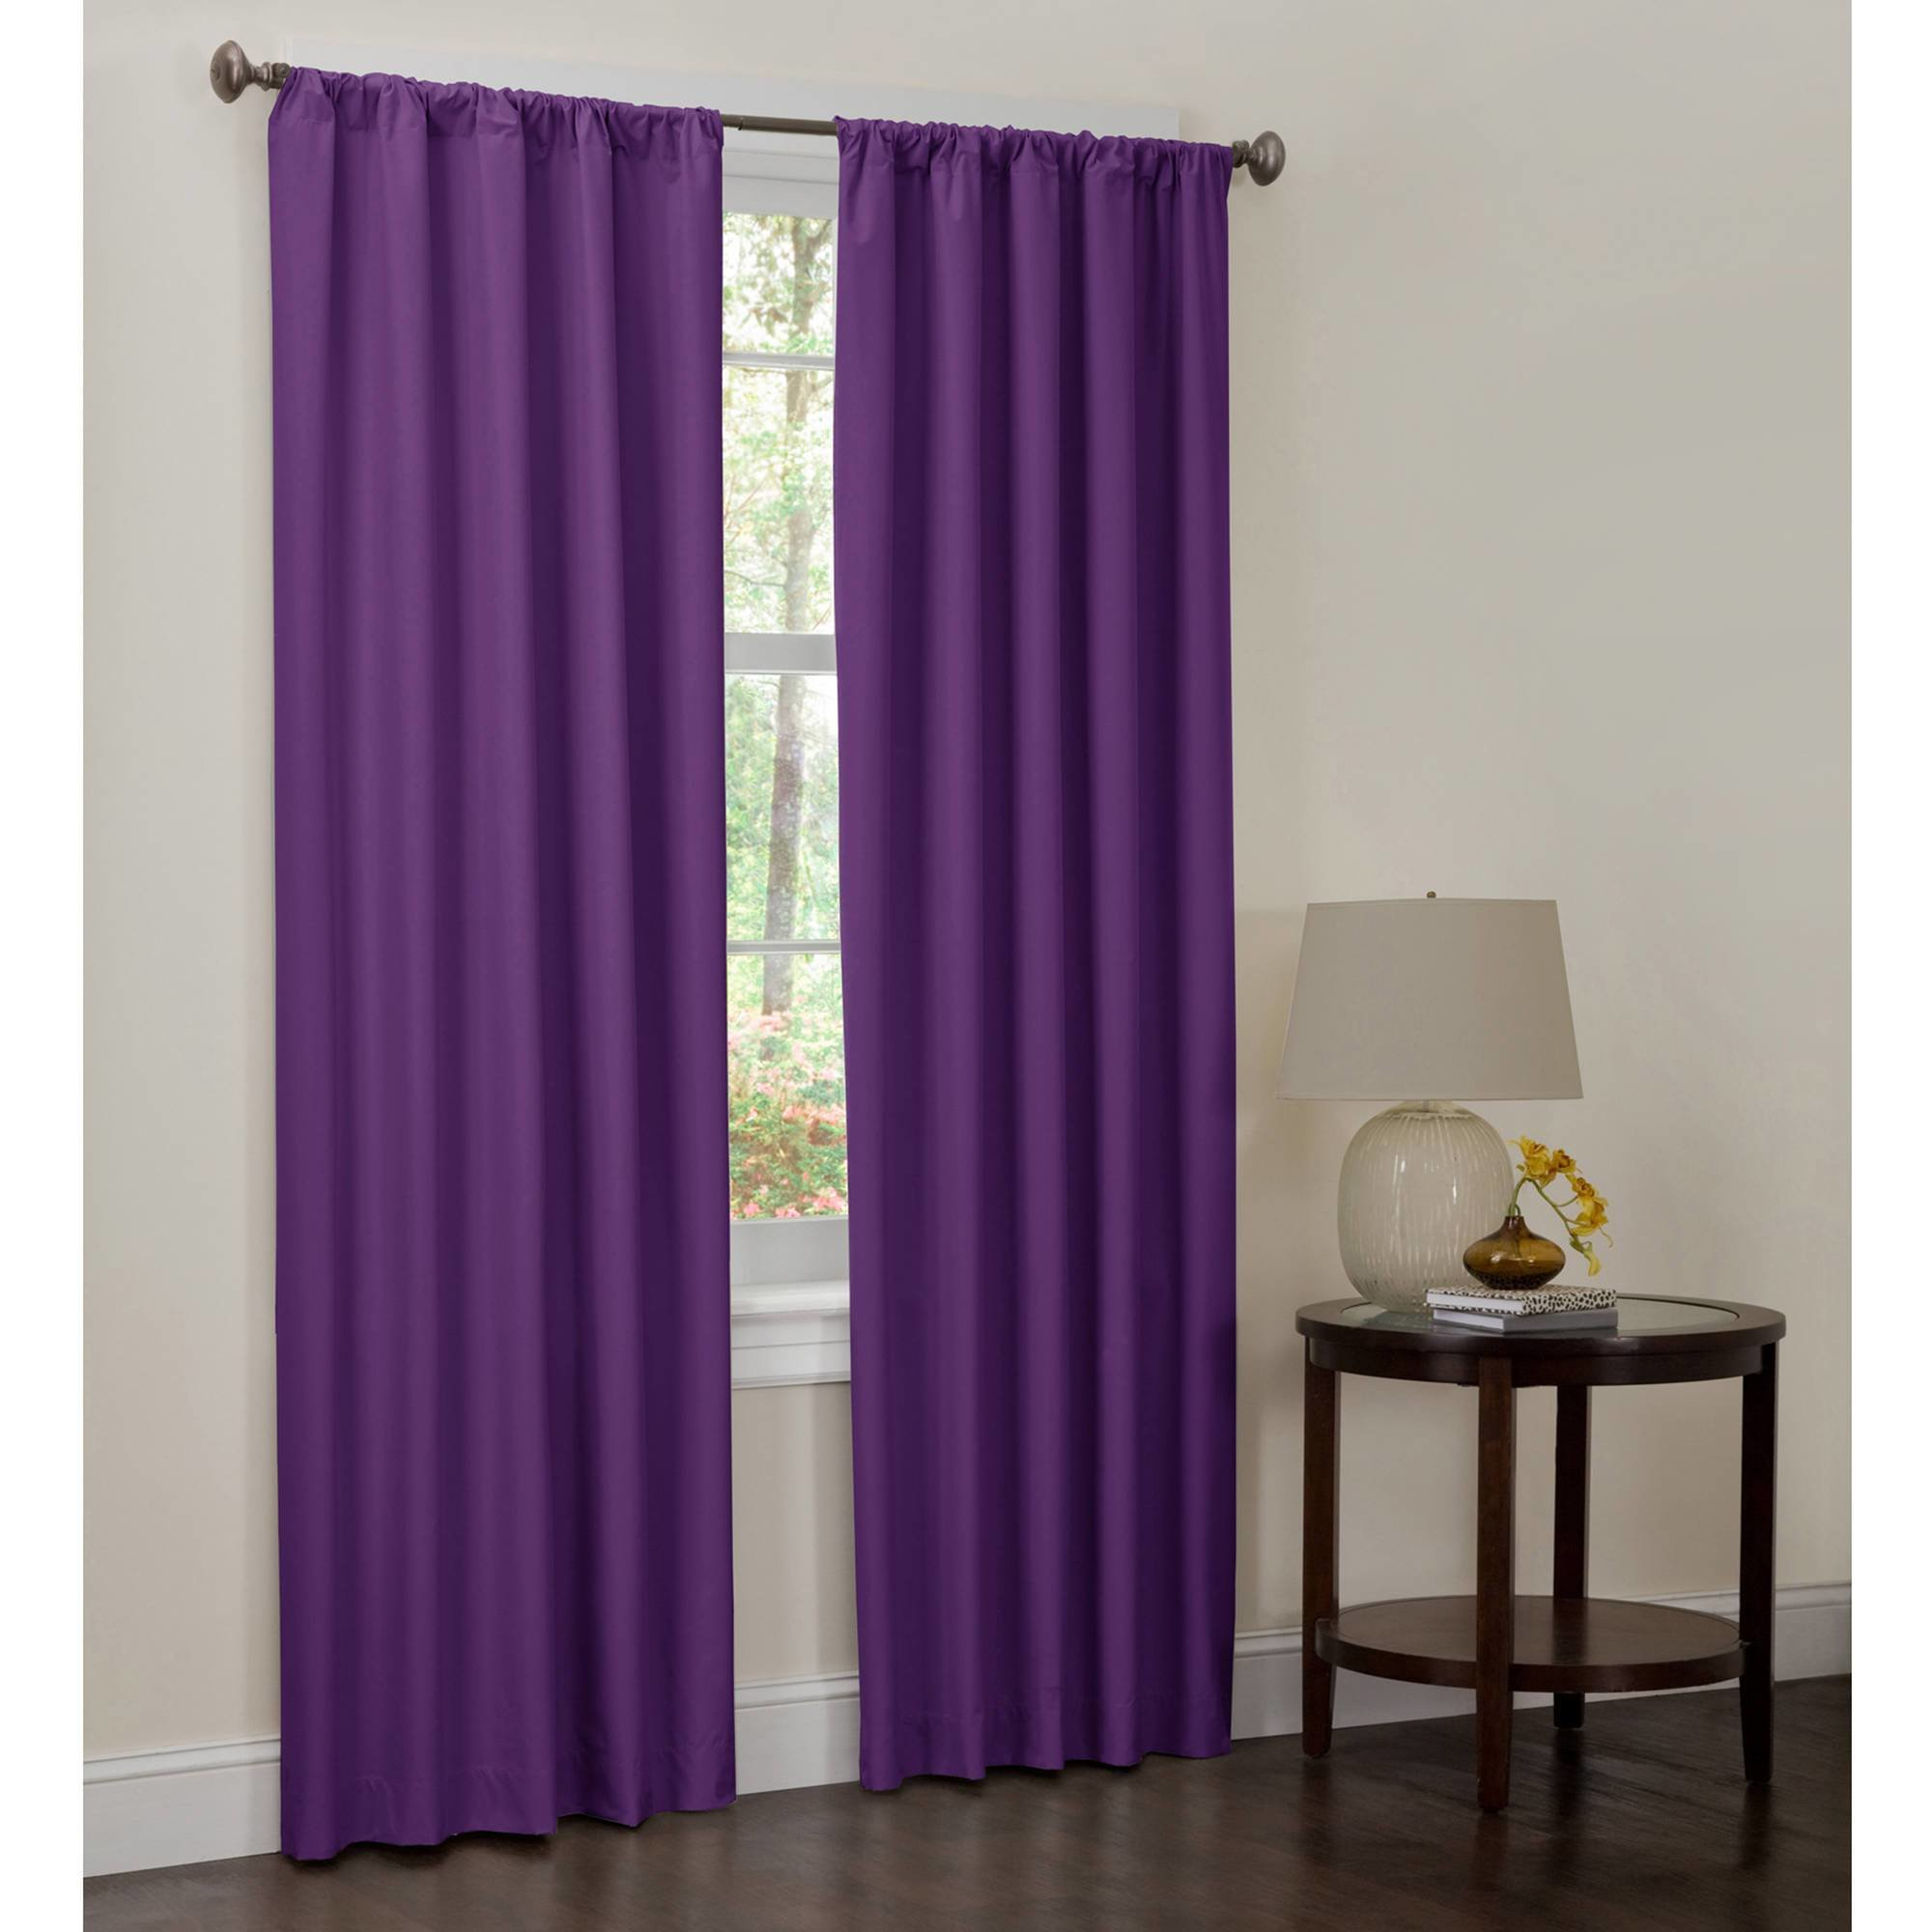 Best Maytex Bedroom Curtain Panel Set Of 2 40X84 Walmart Com With Pictures